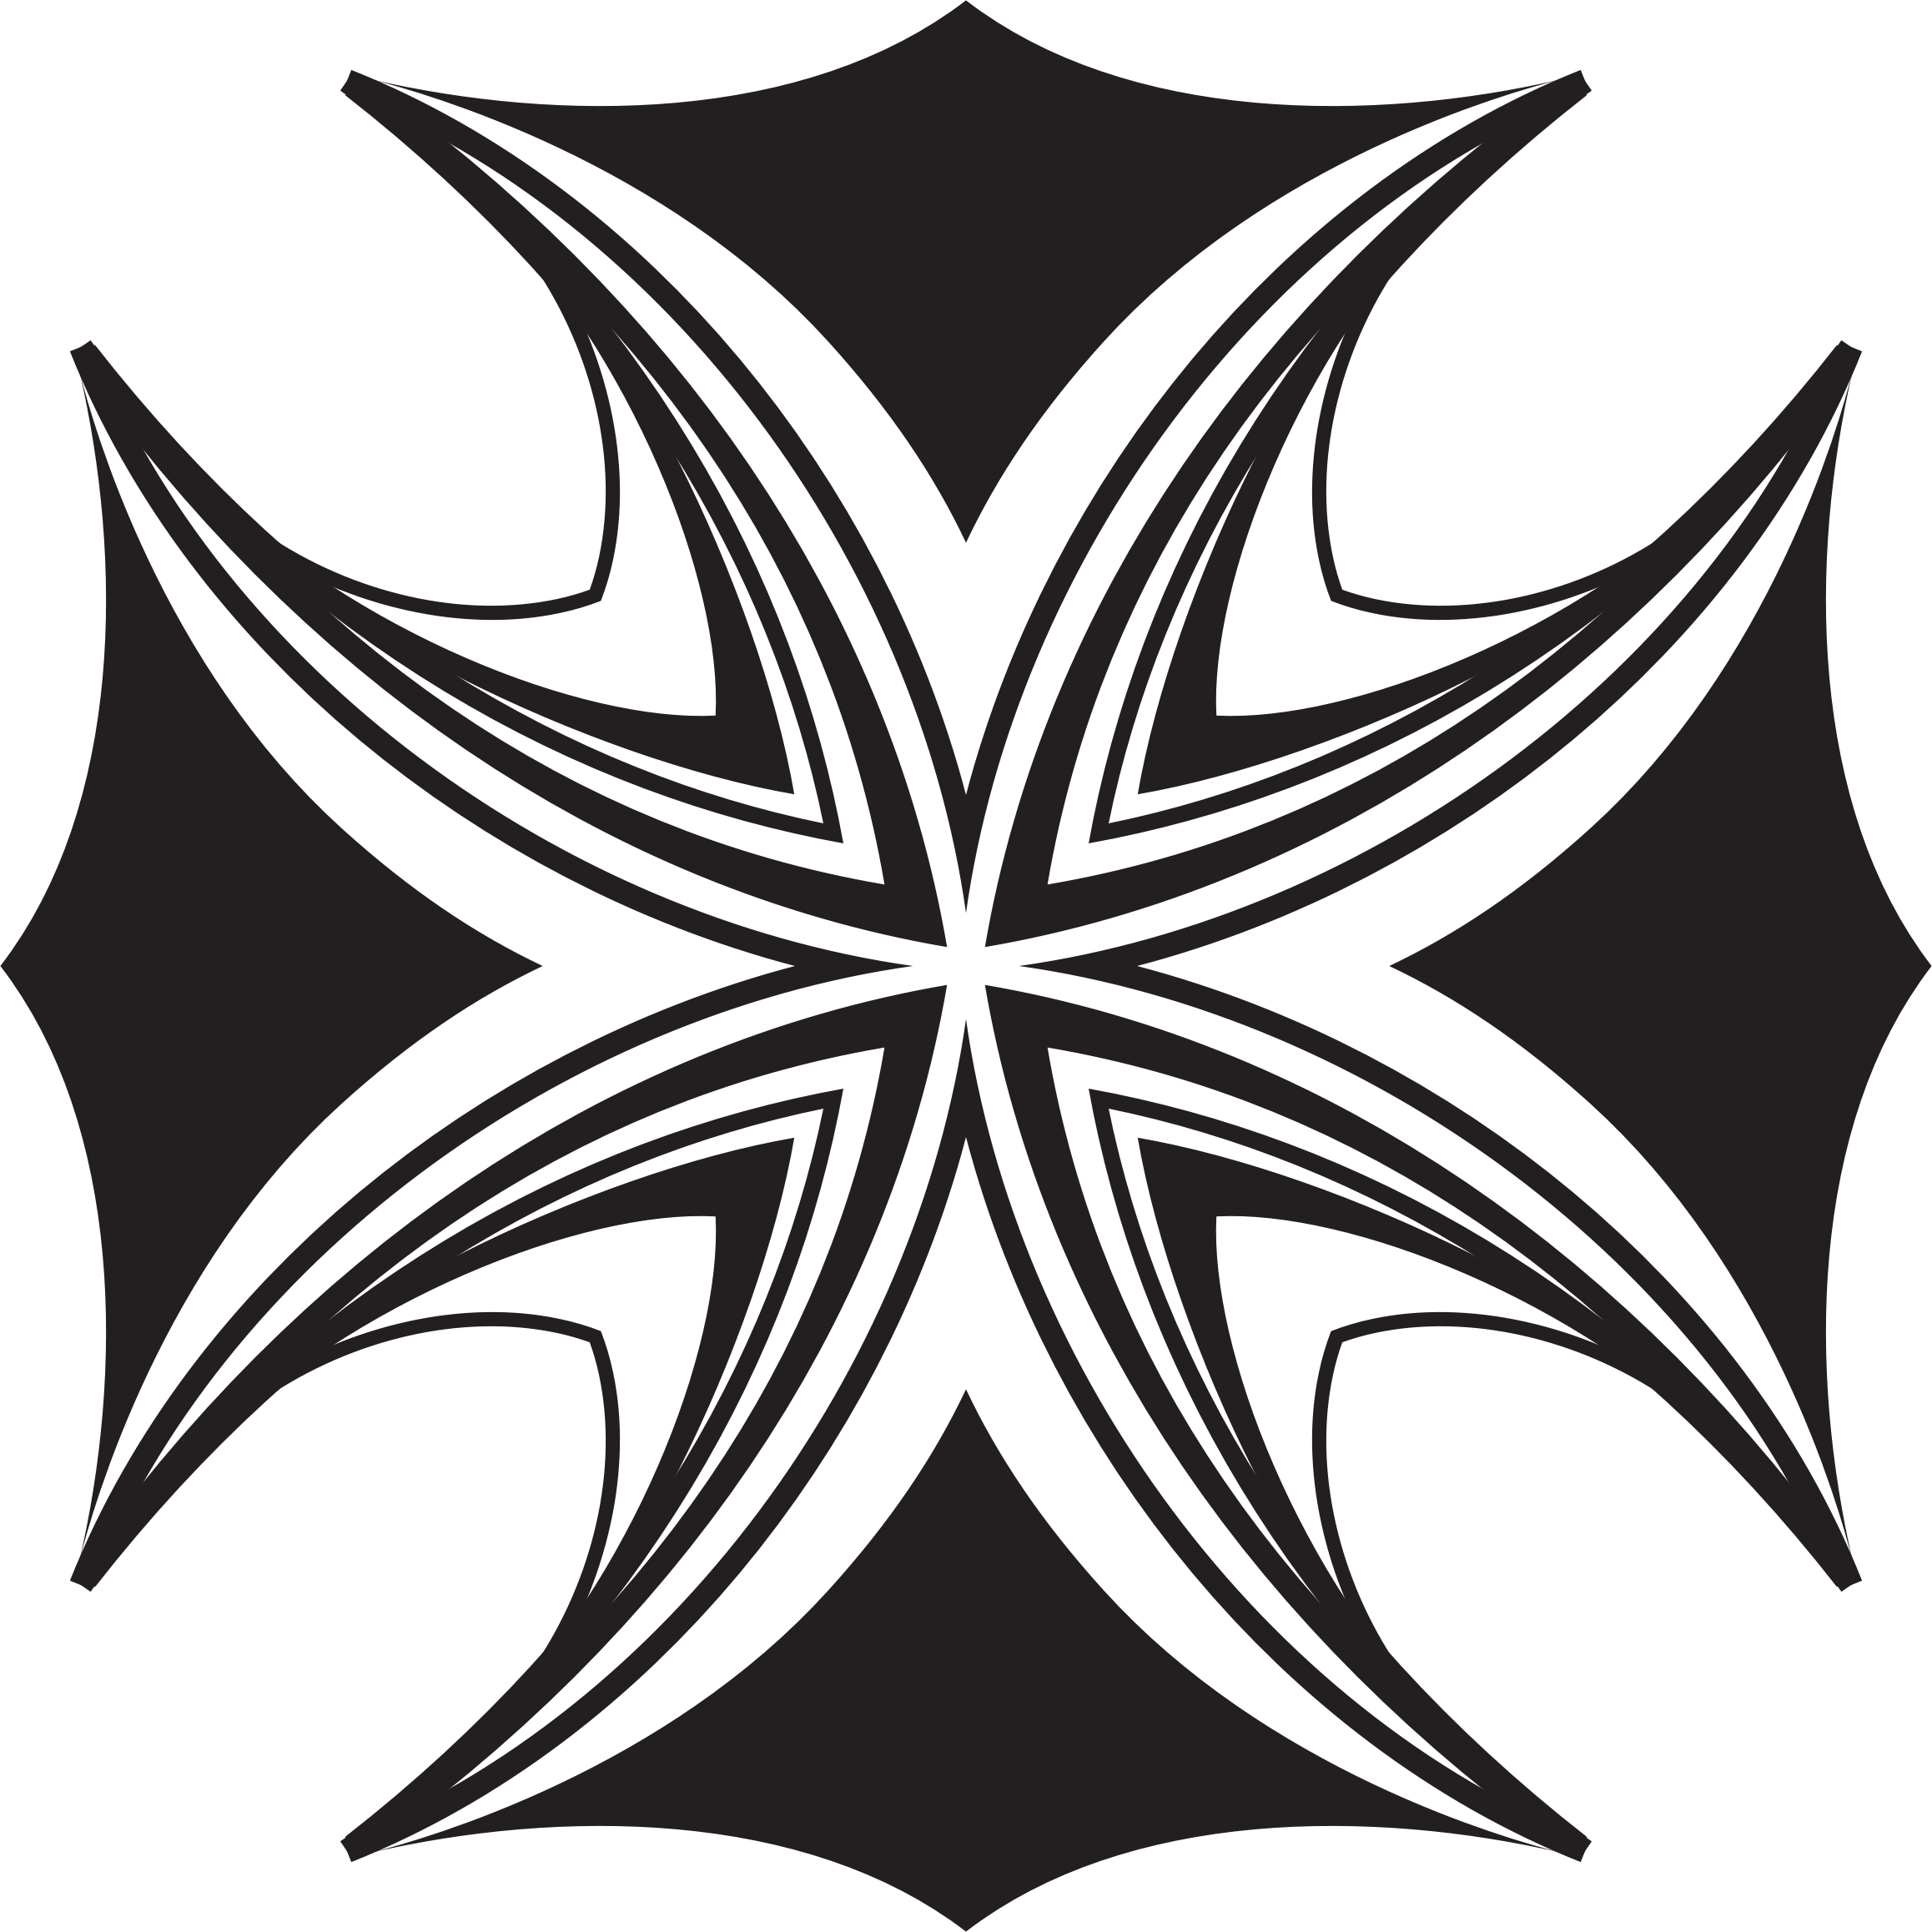 Free clipart maltese cross banner black and white library Clipart - Maltese Cross Mark II banner black and white library